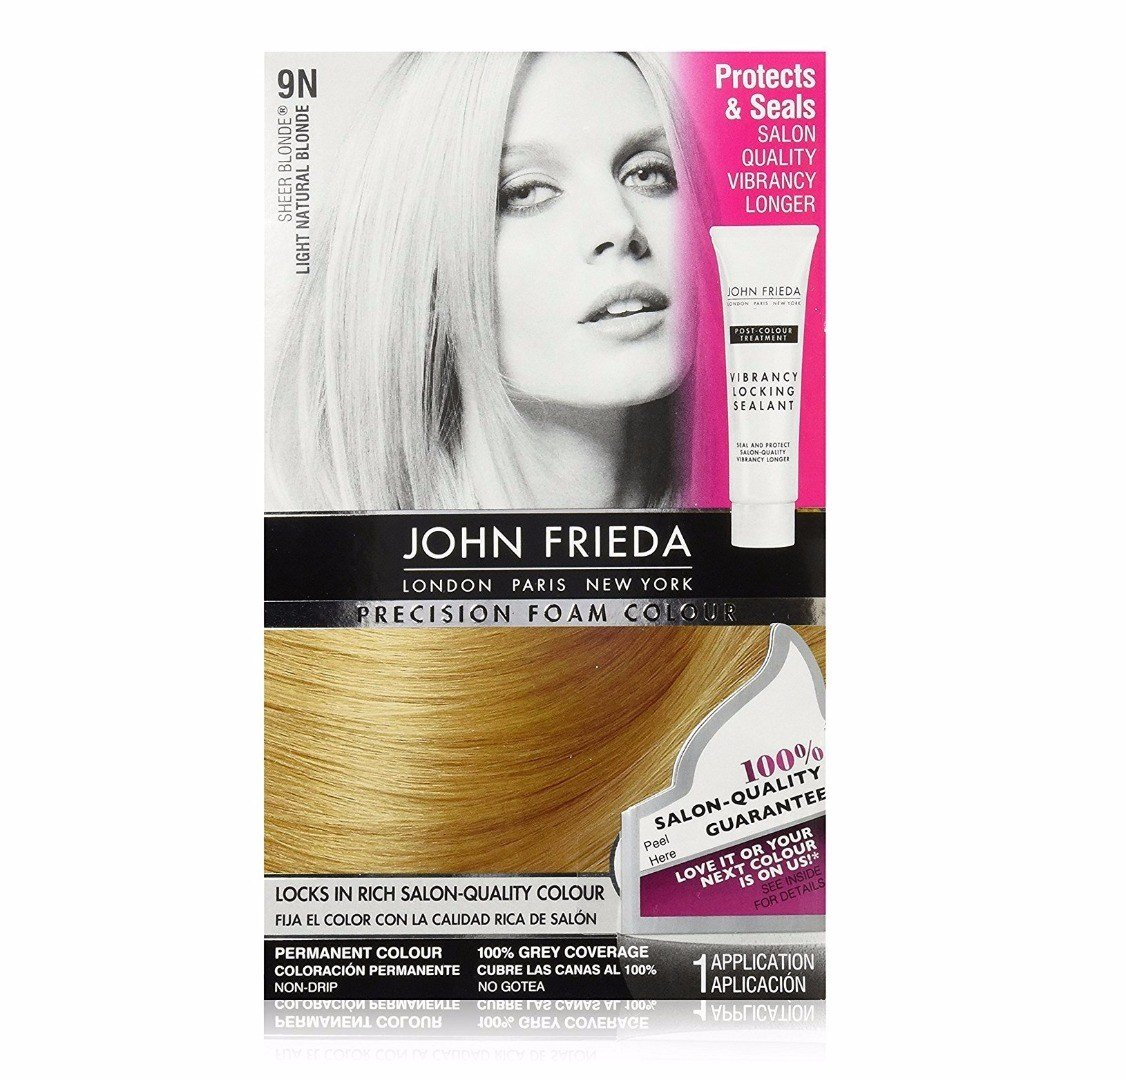 New John Frieda Precision Foam Color Light Natural Blonde 9N Ideas With Pictures